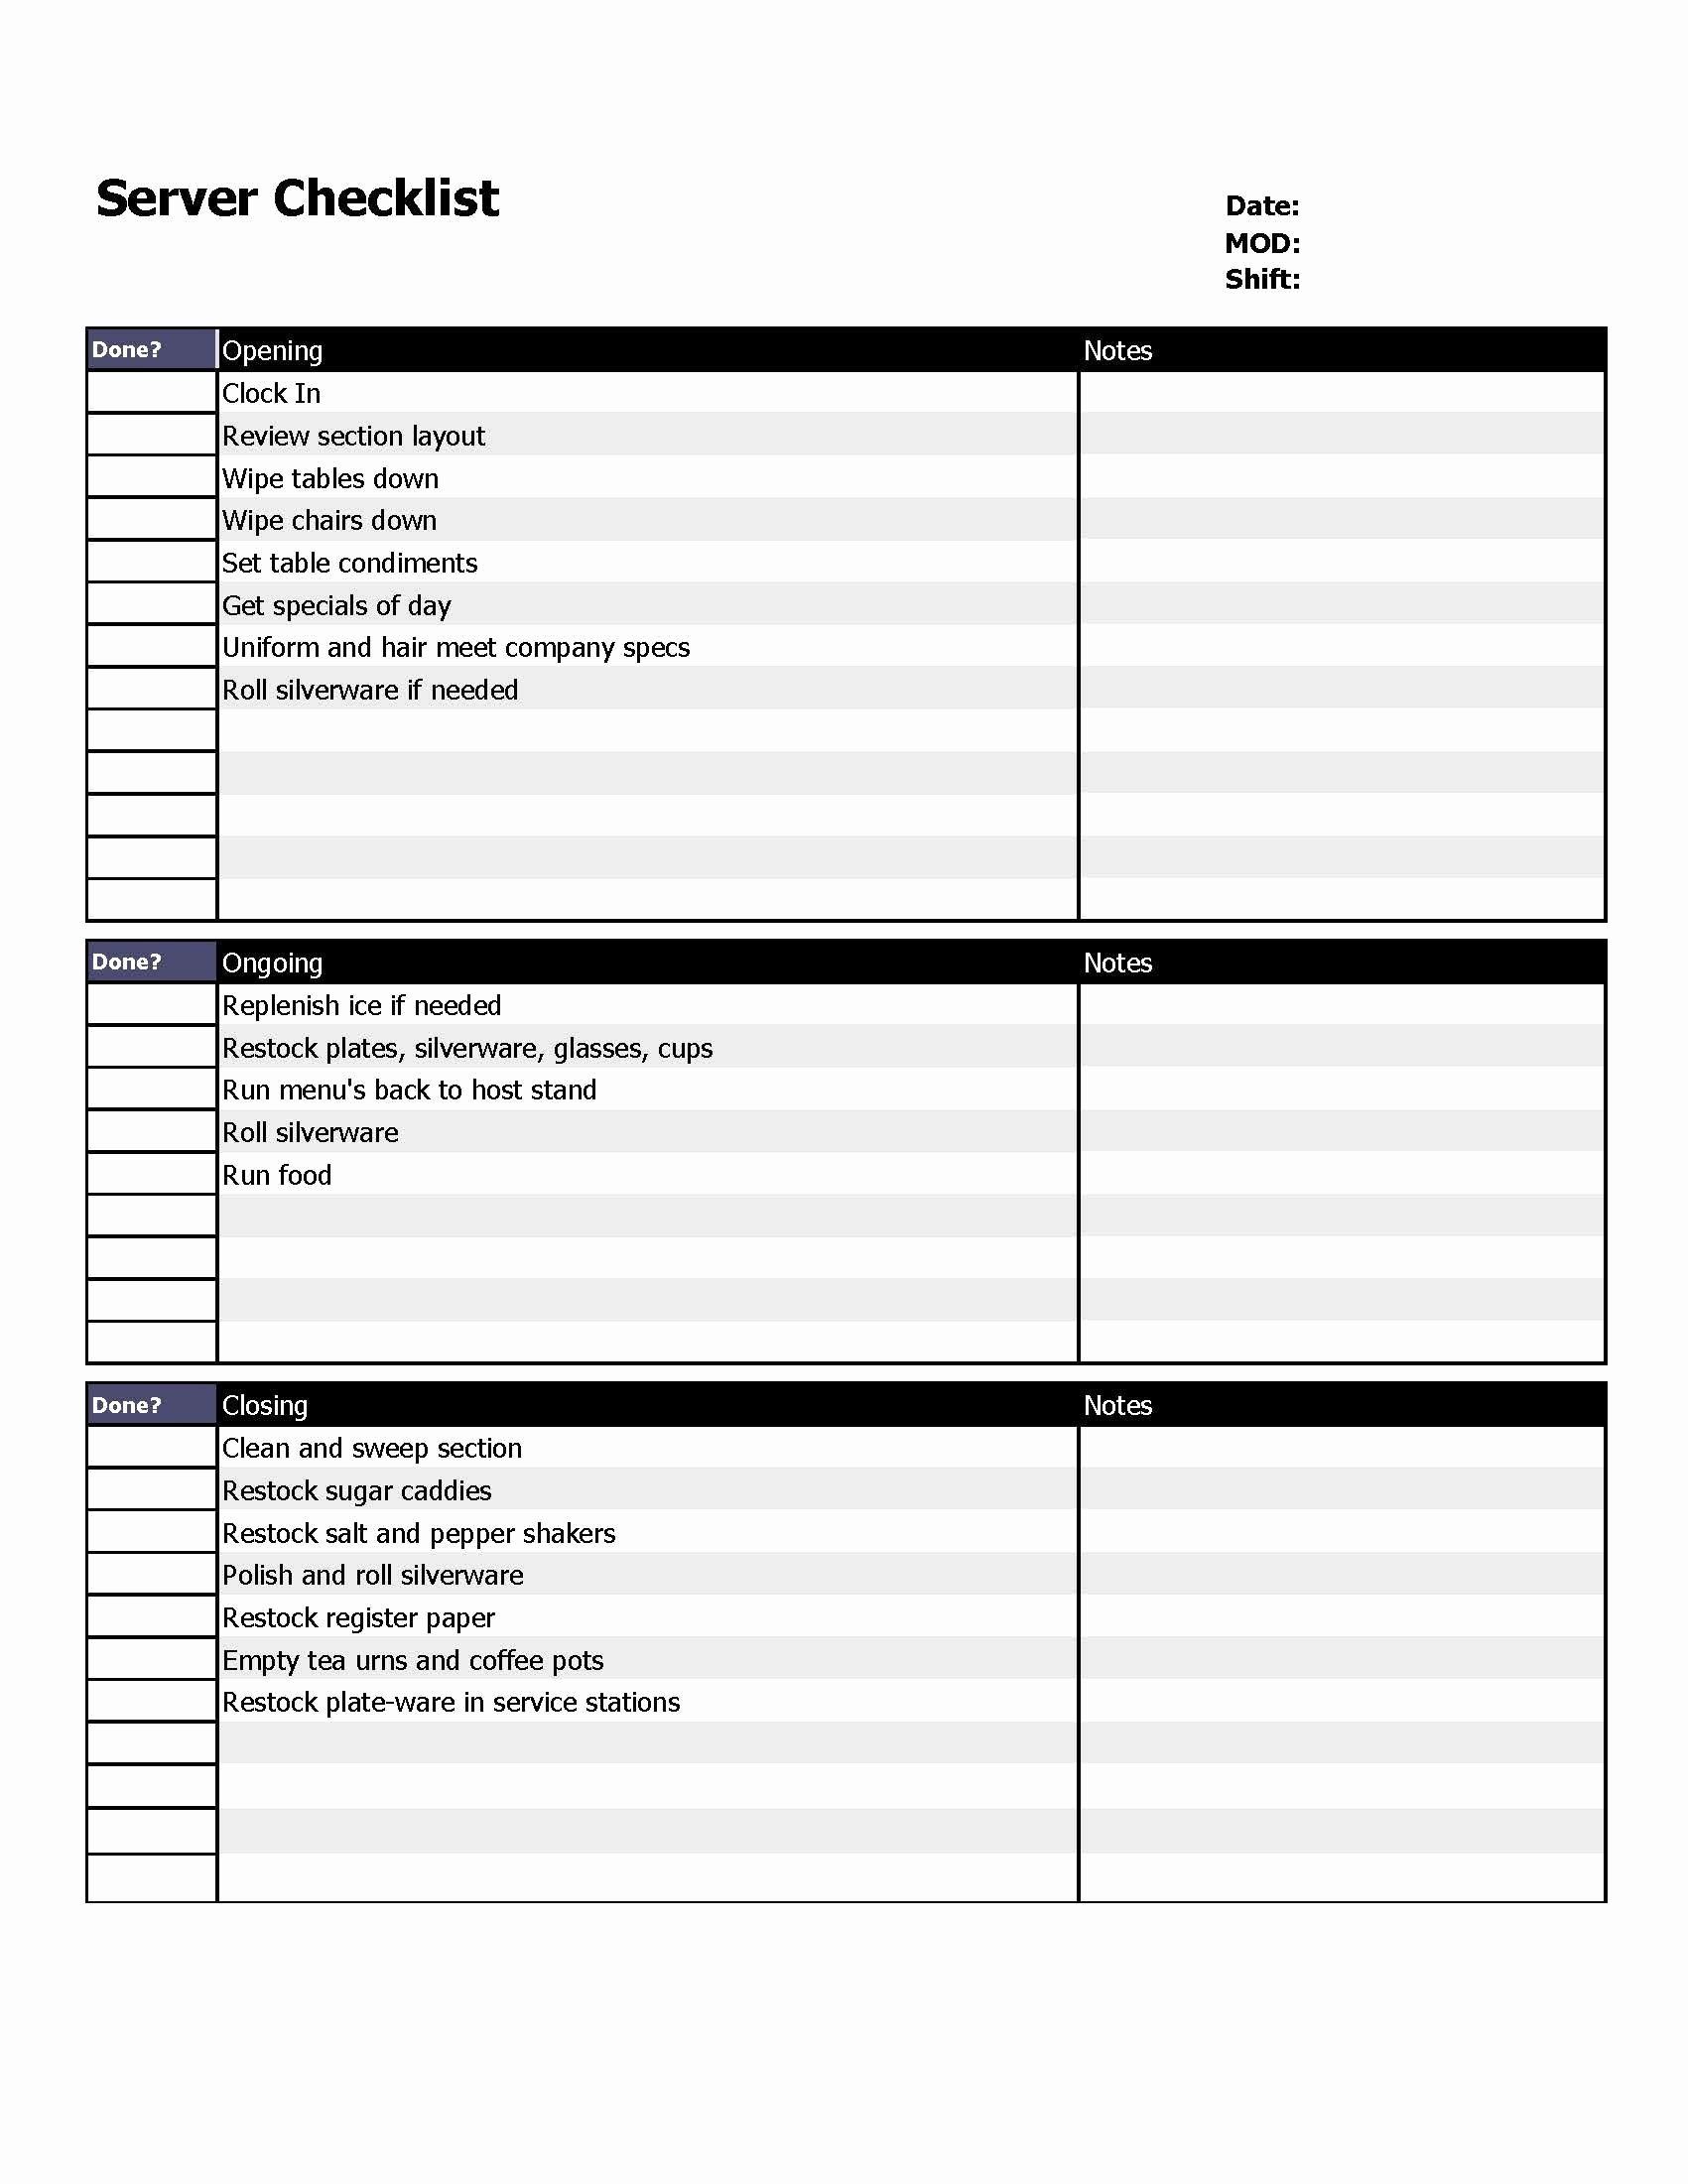 Restaurant Cleaning Checklist Template New Restaurant Server Checklist form